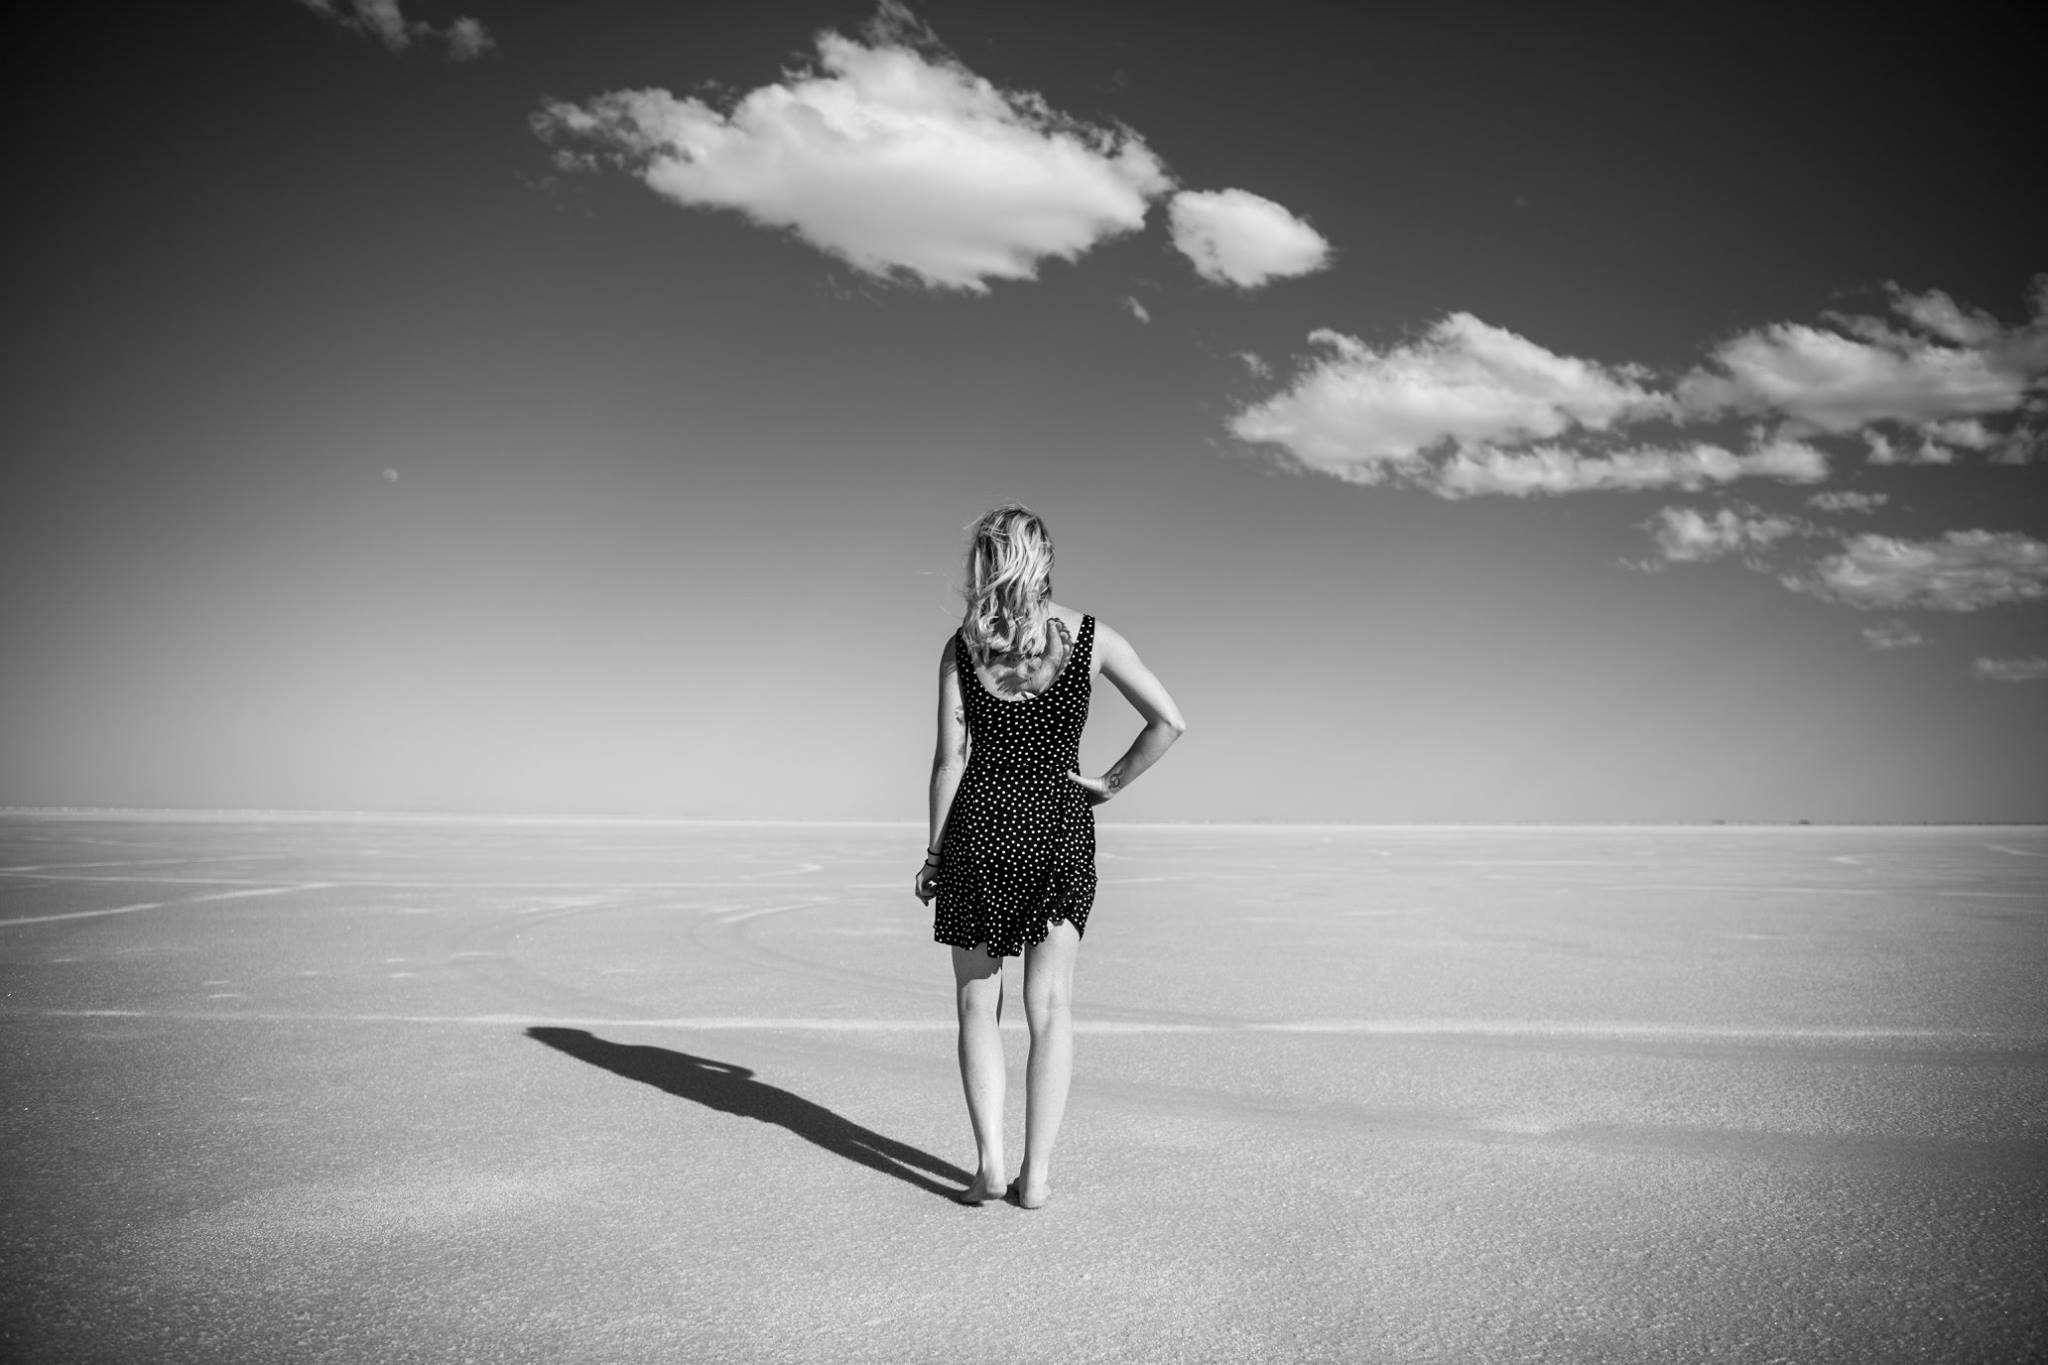 "I rarely do self-portraits, but found myself at some amazing Salt Flats with a camera and dress in the car. It was so interesting/different to try different things and not be afraid to look stupid or have my usual smile. The quote I based these off of: ""I tried to drown my sorrows, but the bastards learned how to swim, and now I am overwhelmed by this decent and good feeling.""  -Karin Willet"